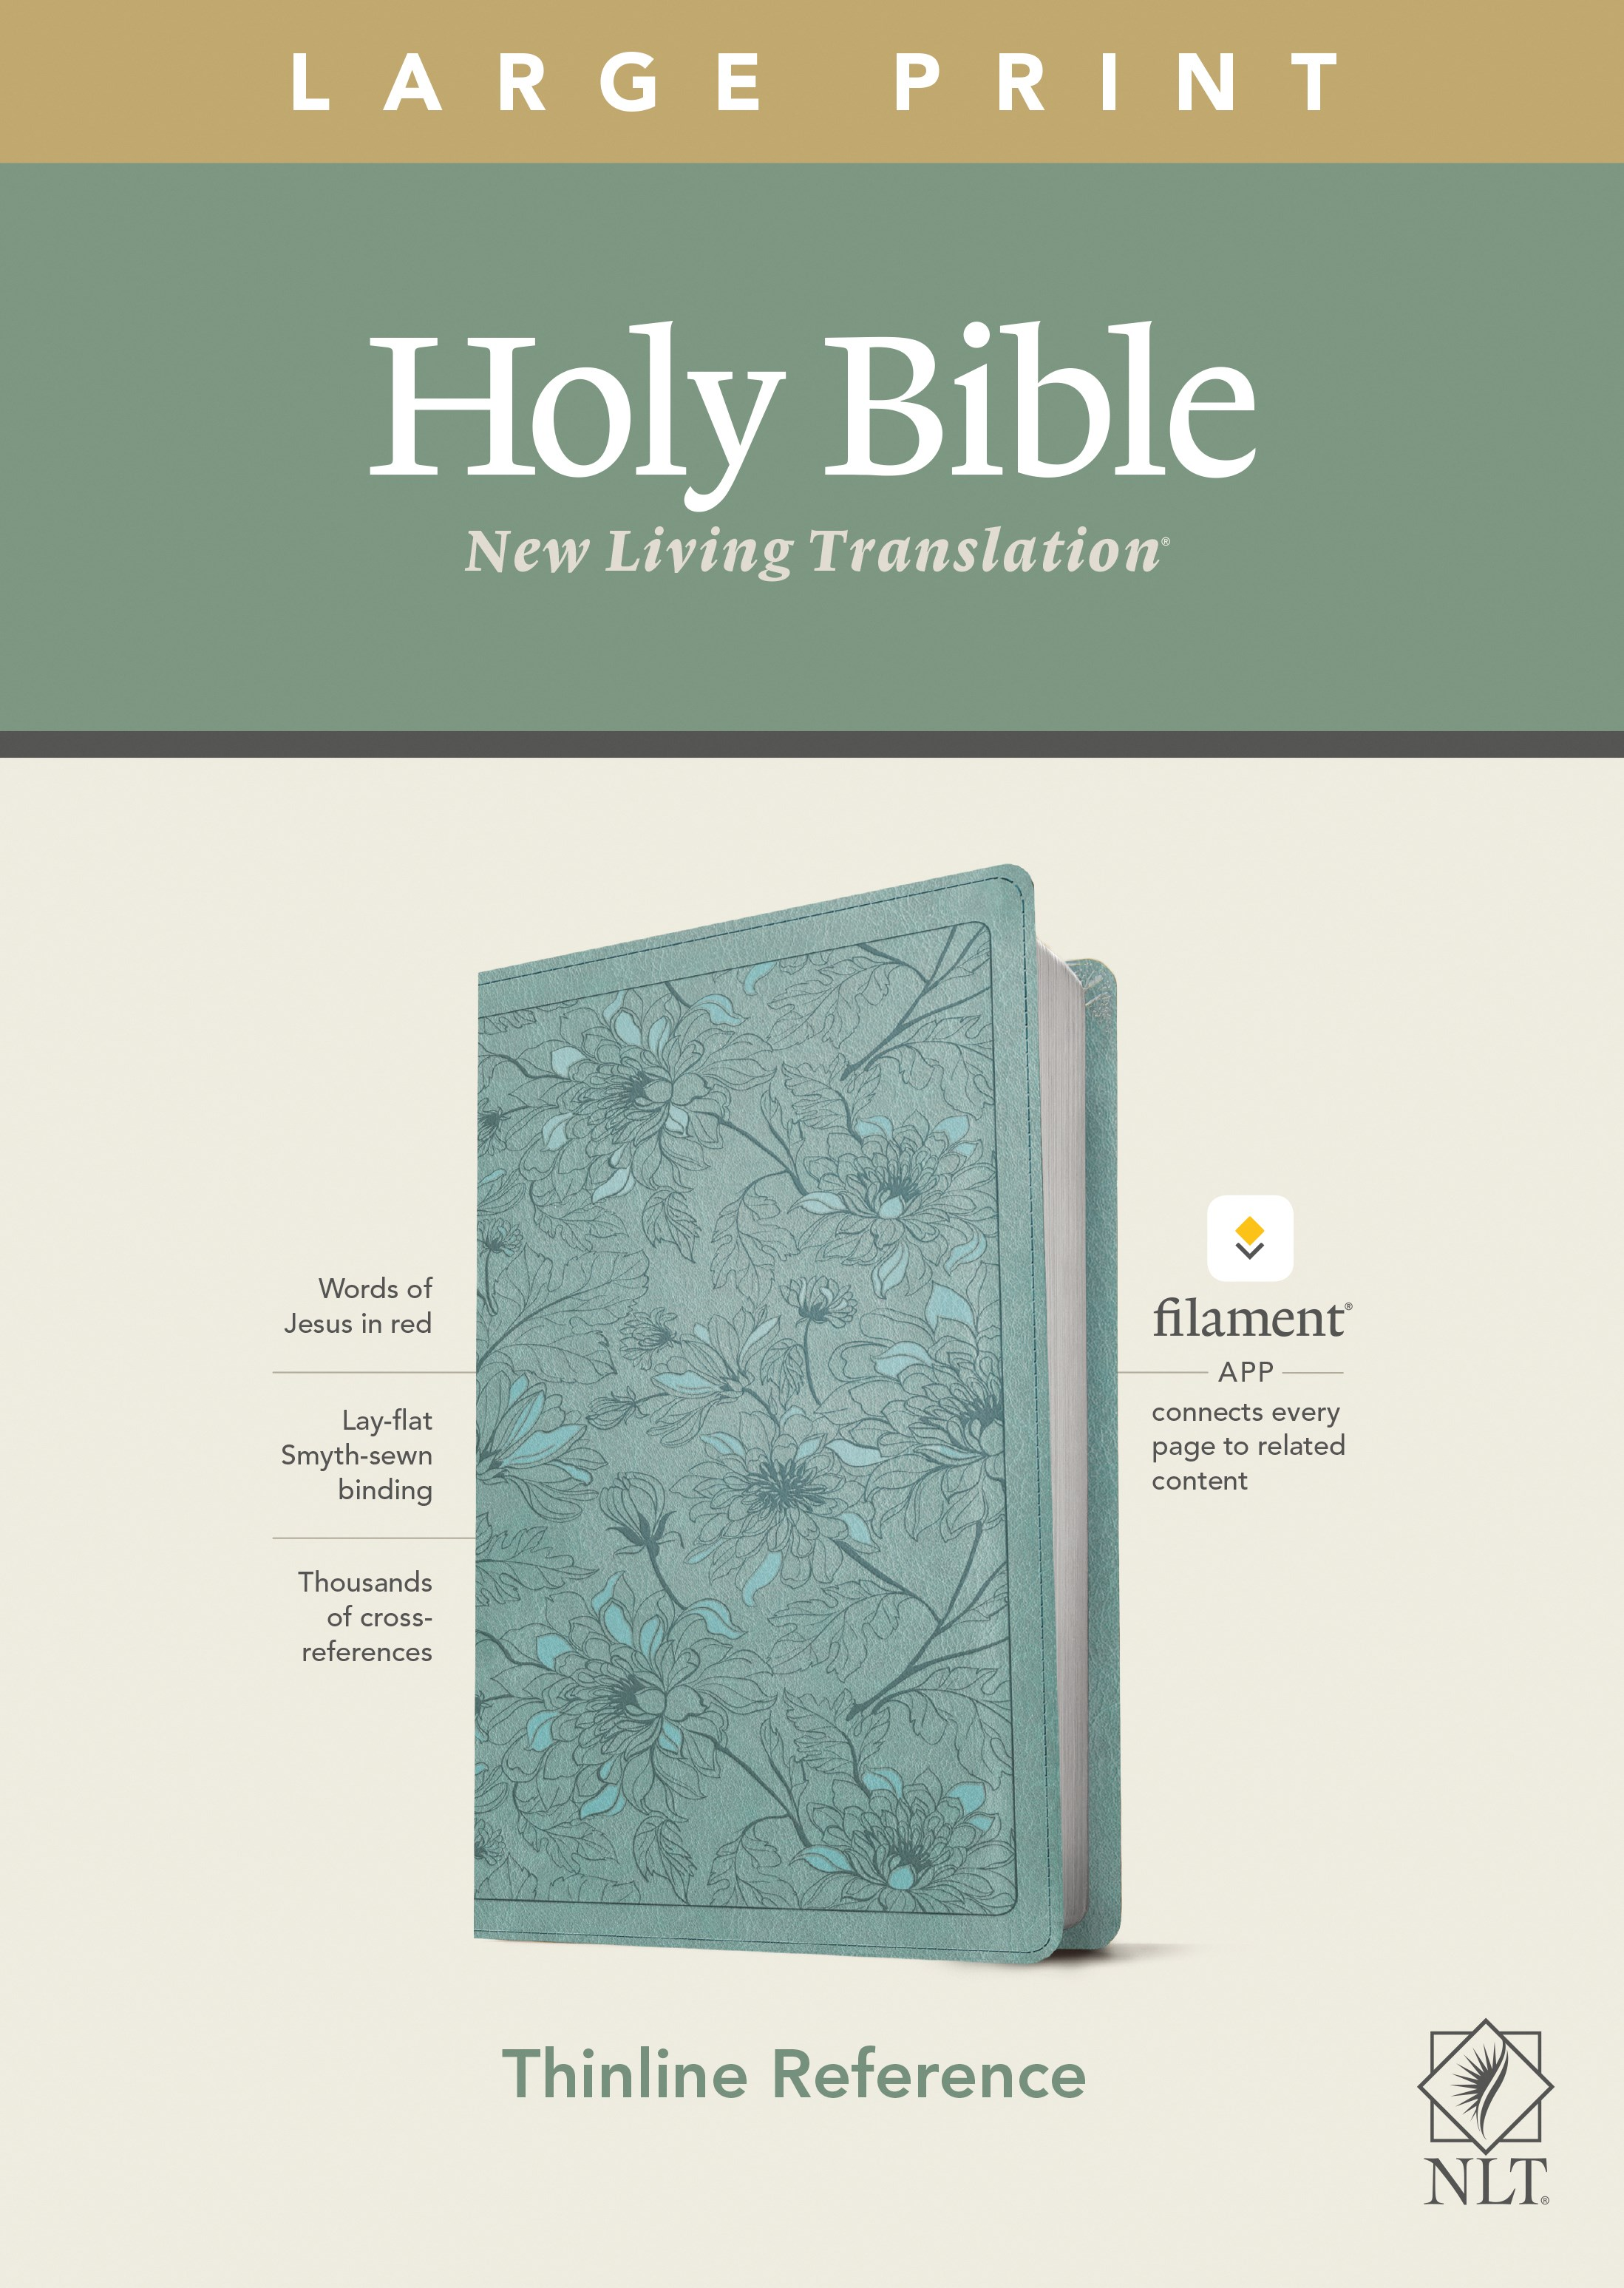 NLT Large Print Thinline Reference Bible/Filament Enabled Edition-Teal Floral LeatherLike